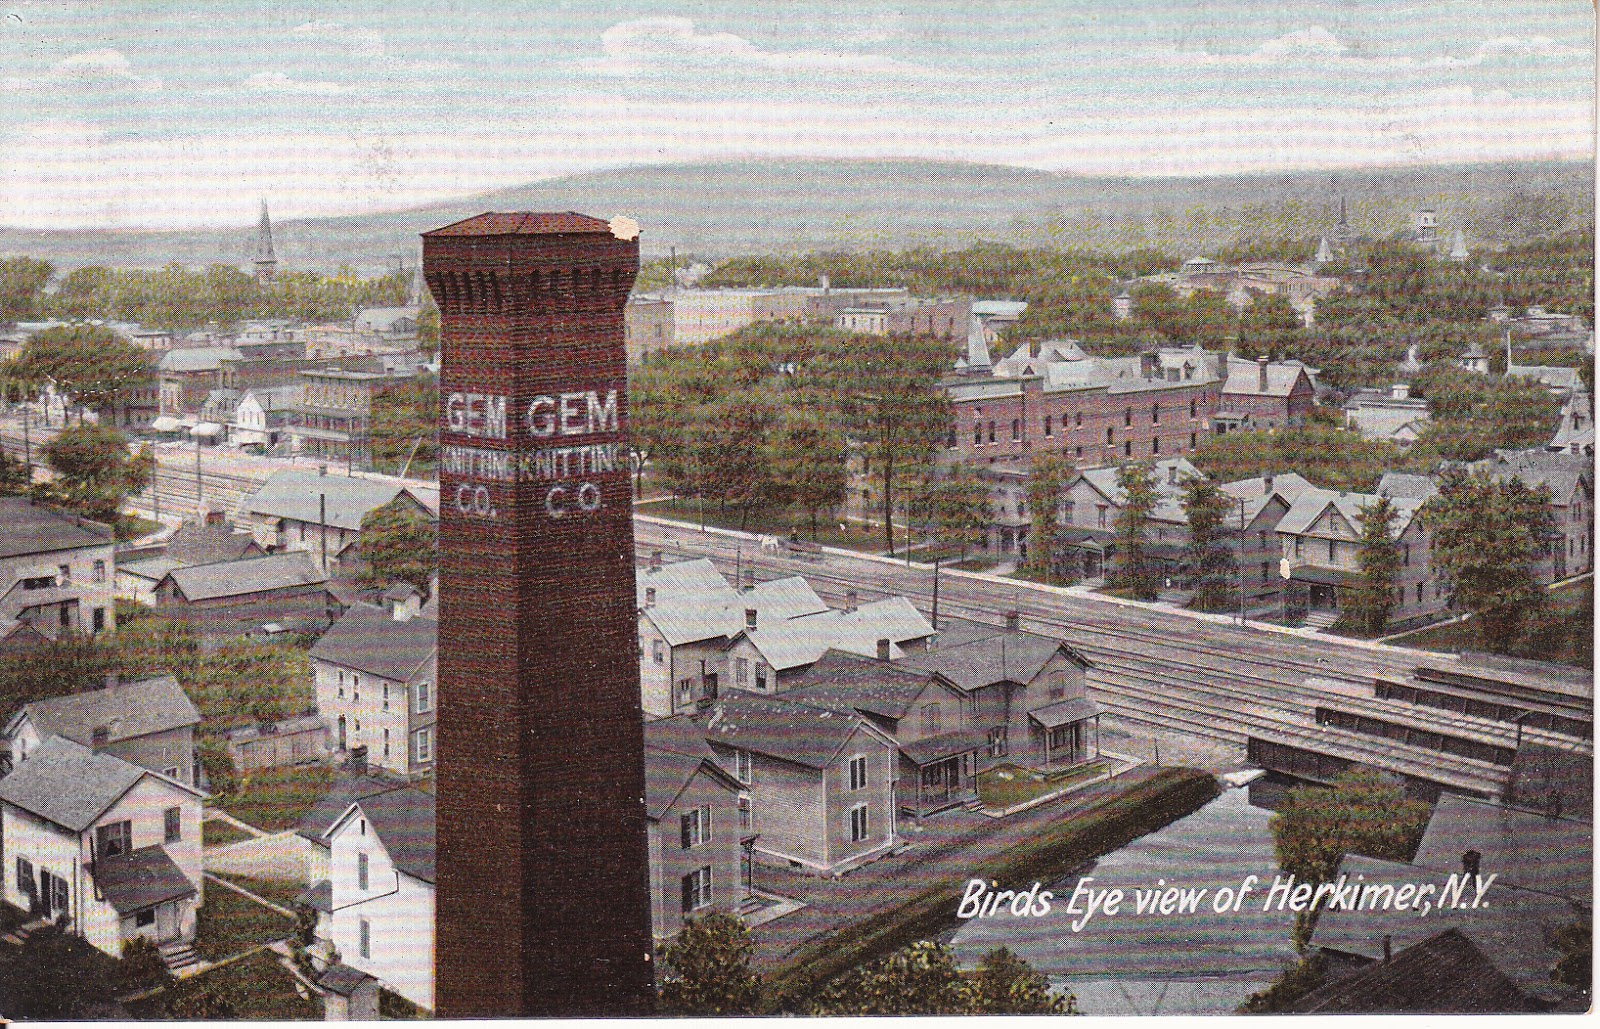 Bird's Eye View of Herkimer, N.Y. with Gem Knitting Company Vintage Postcard